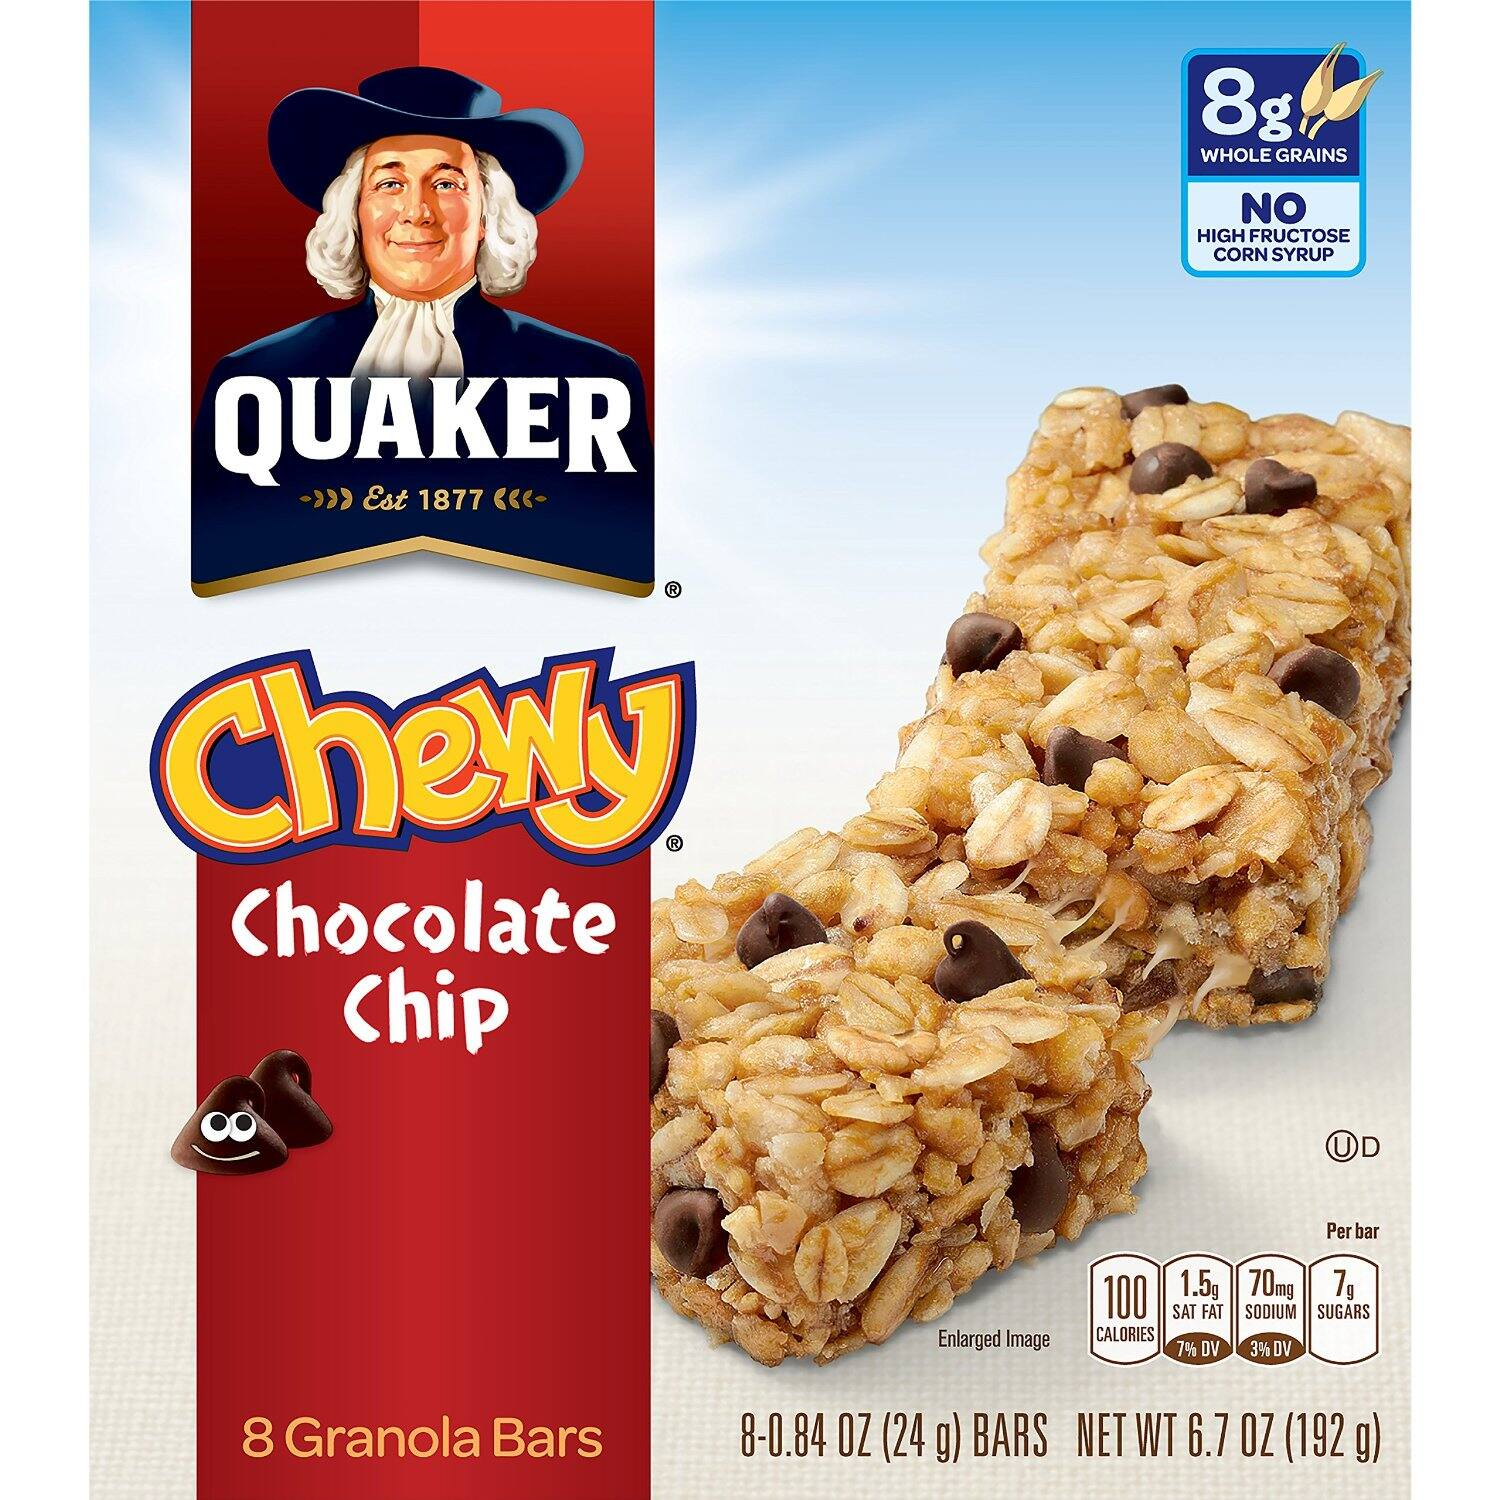 BACK IN STOCK - Prime Members: 48-Ct Quaker Chewy Granola Bars (Chocolate Chip)  $7.25 AC & S&S ($6.22 AC & 5 S&S Orders) + Free Shipping - Amazon